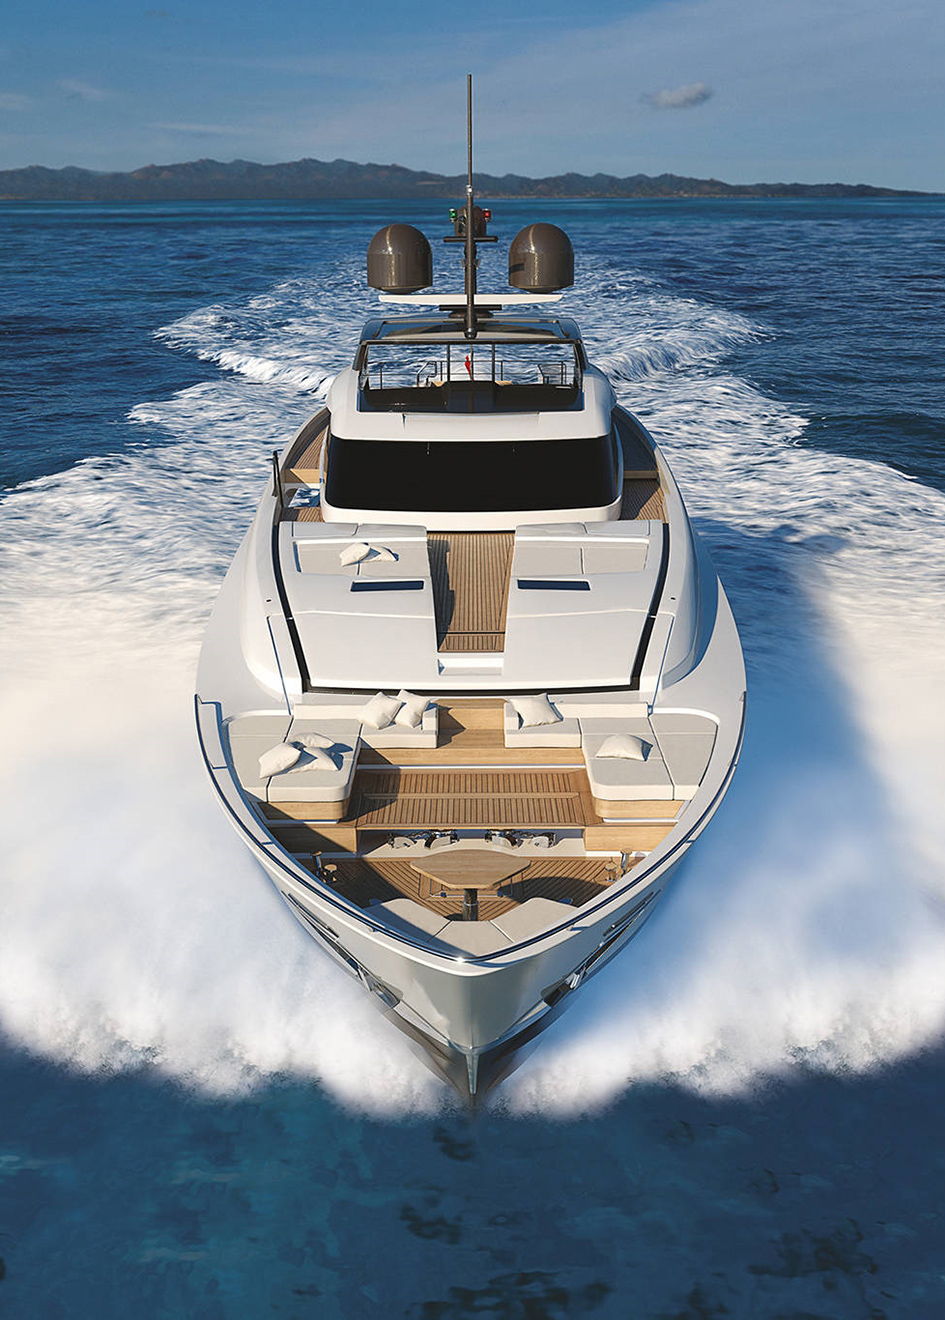 fore-deck-running-shot-of-the-custom-line-120-super-yacht